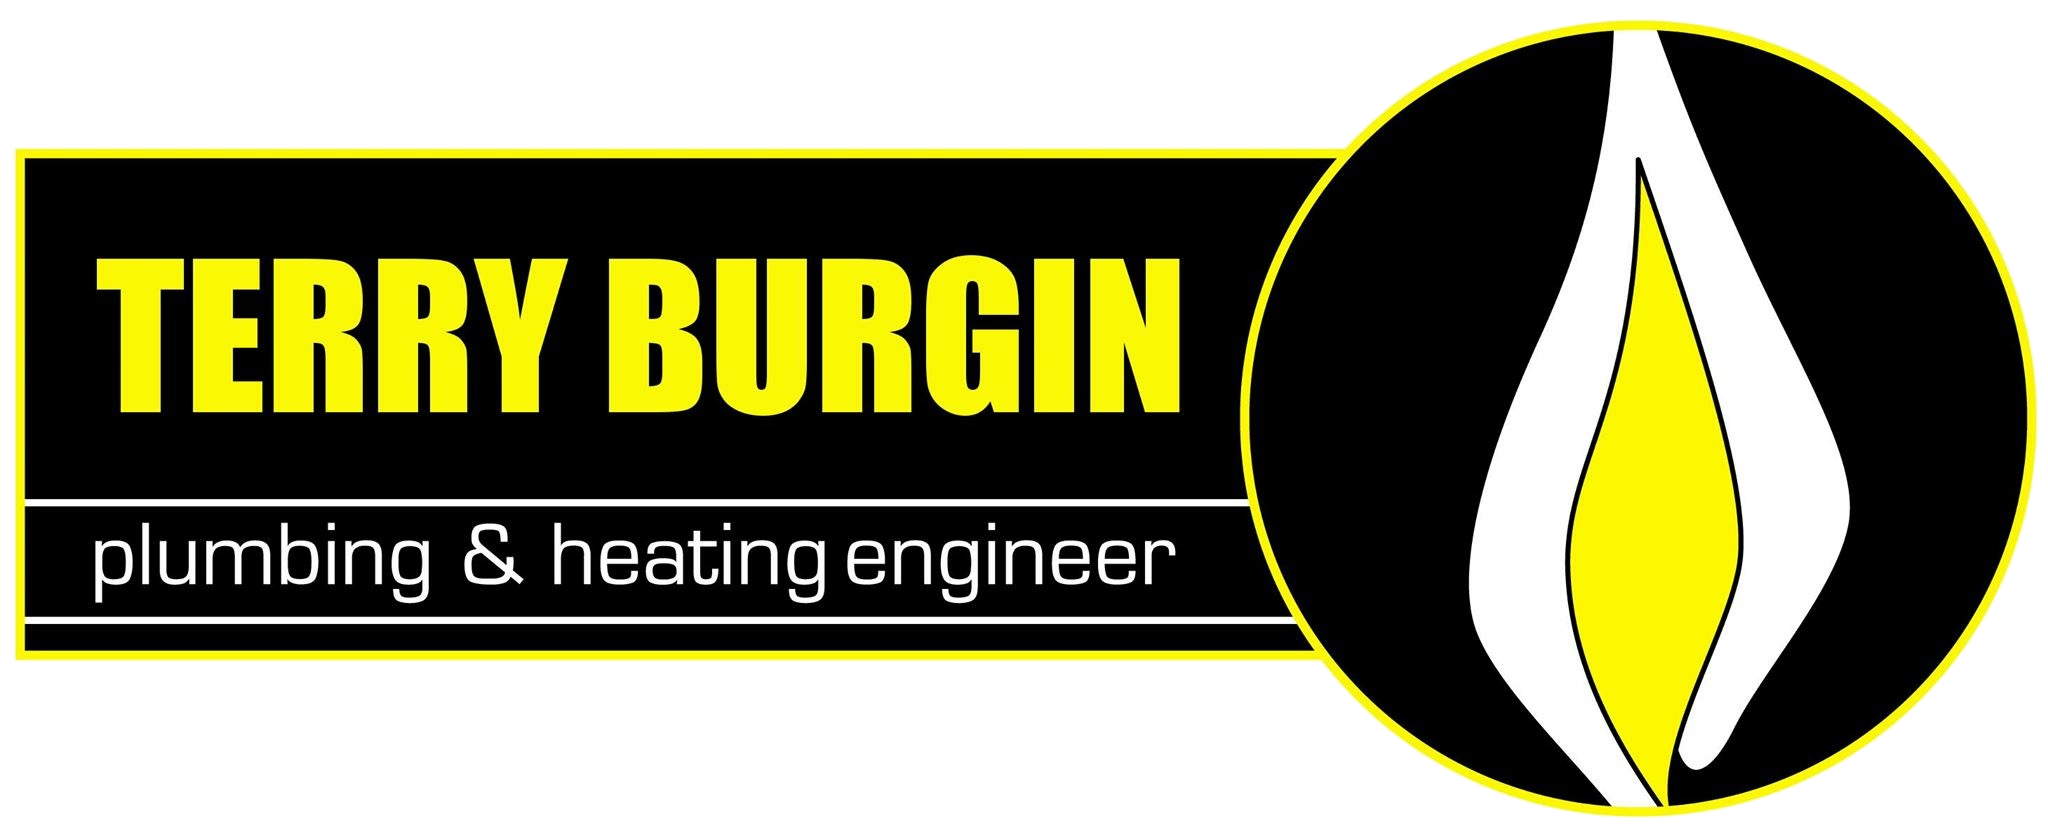 Terry Burgin Plumbing and Heating Engineer Verified Logo